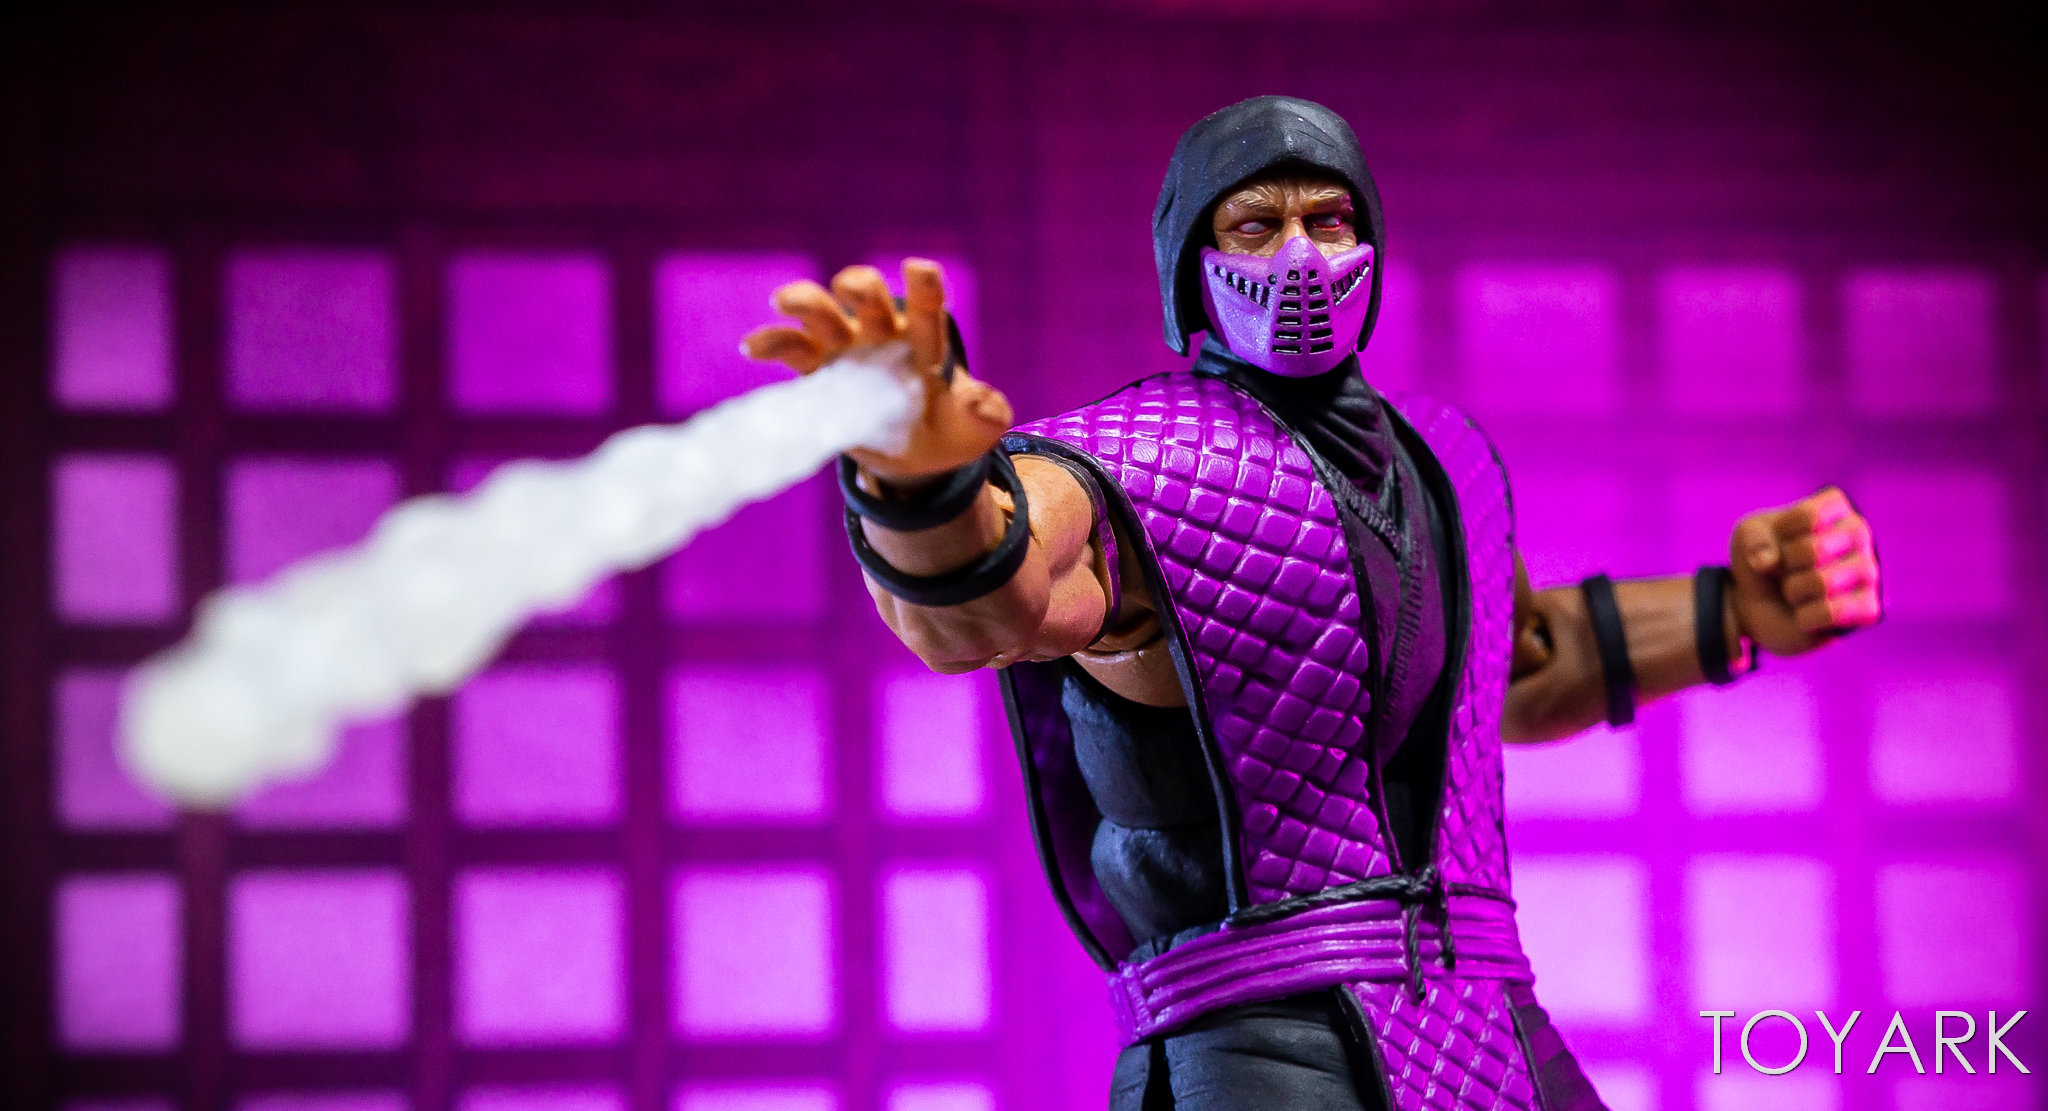 https://news.toyark.com/wp-content/uploads/sites/4/2018/12/Storm-NYCC-18-Mortal-Kombat-Figures-020.jpg